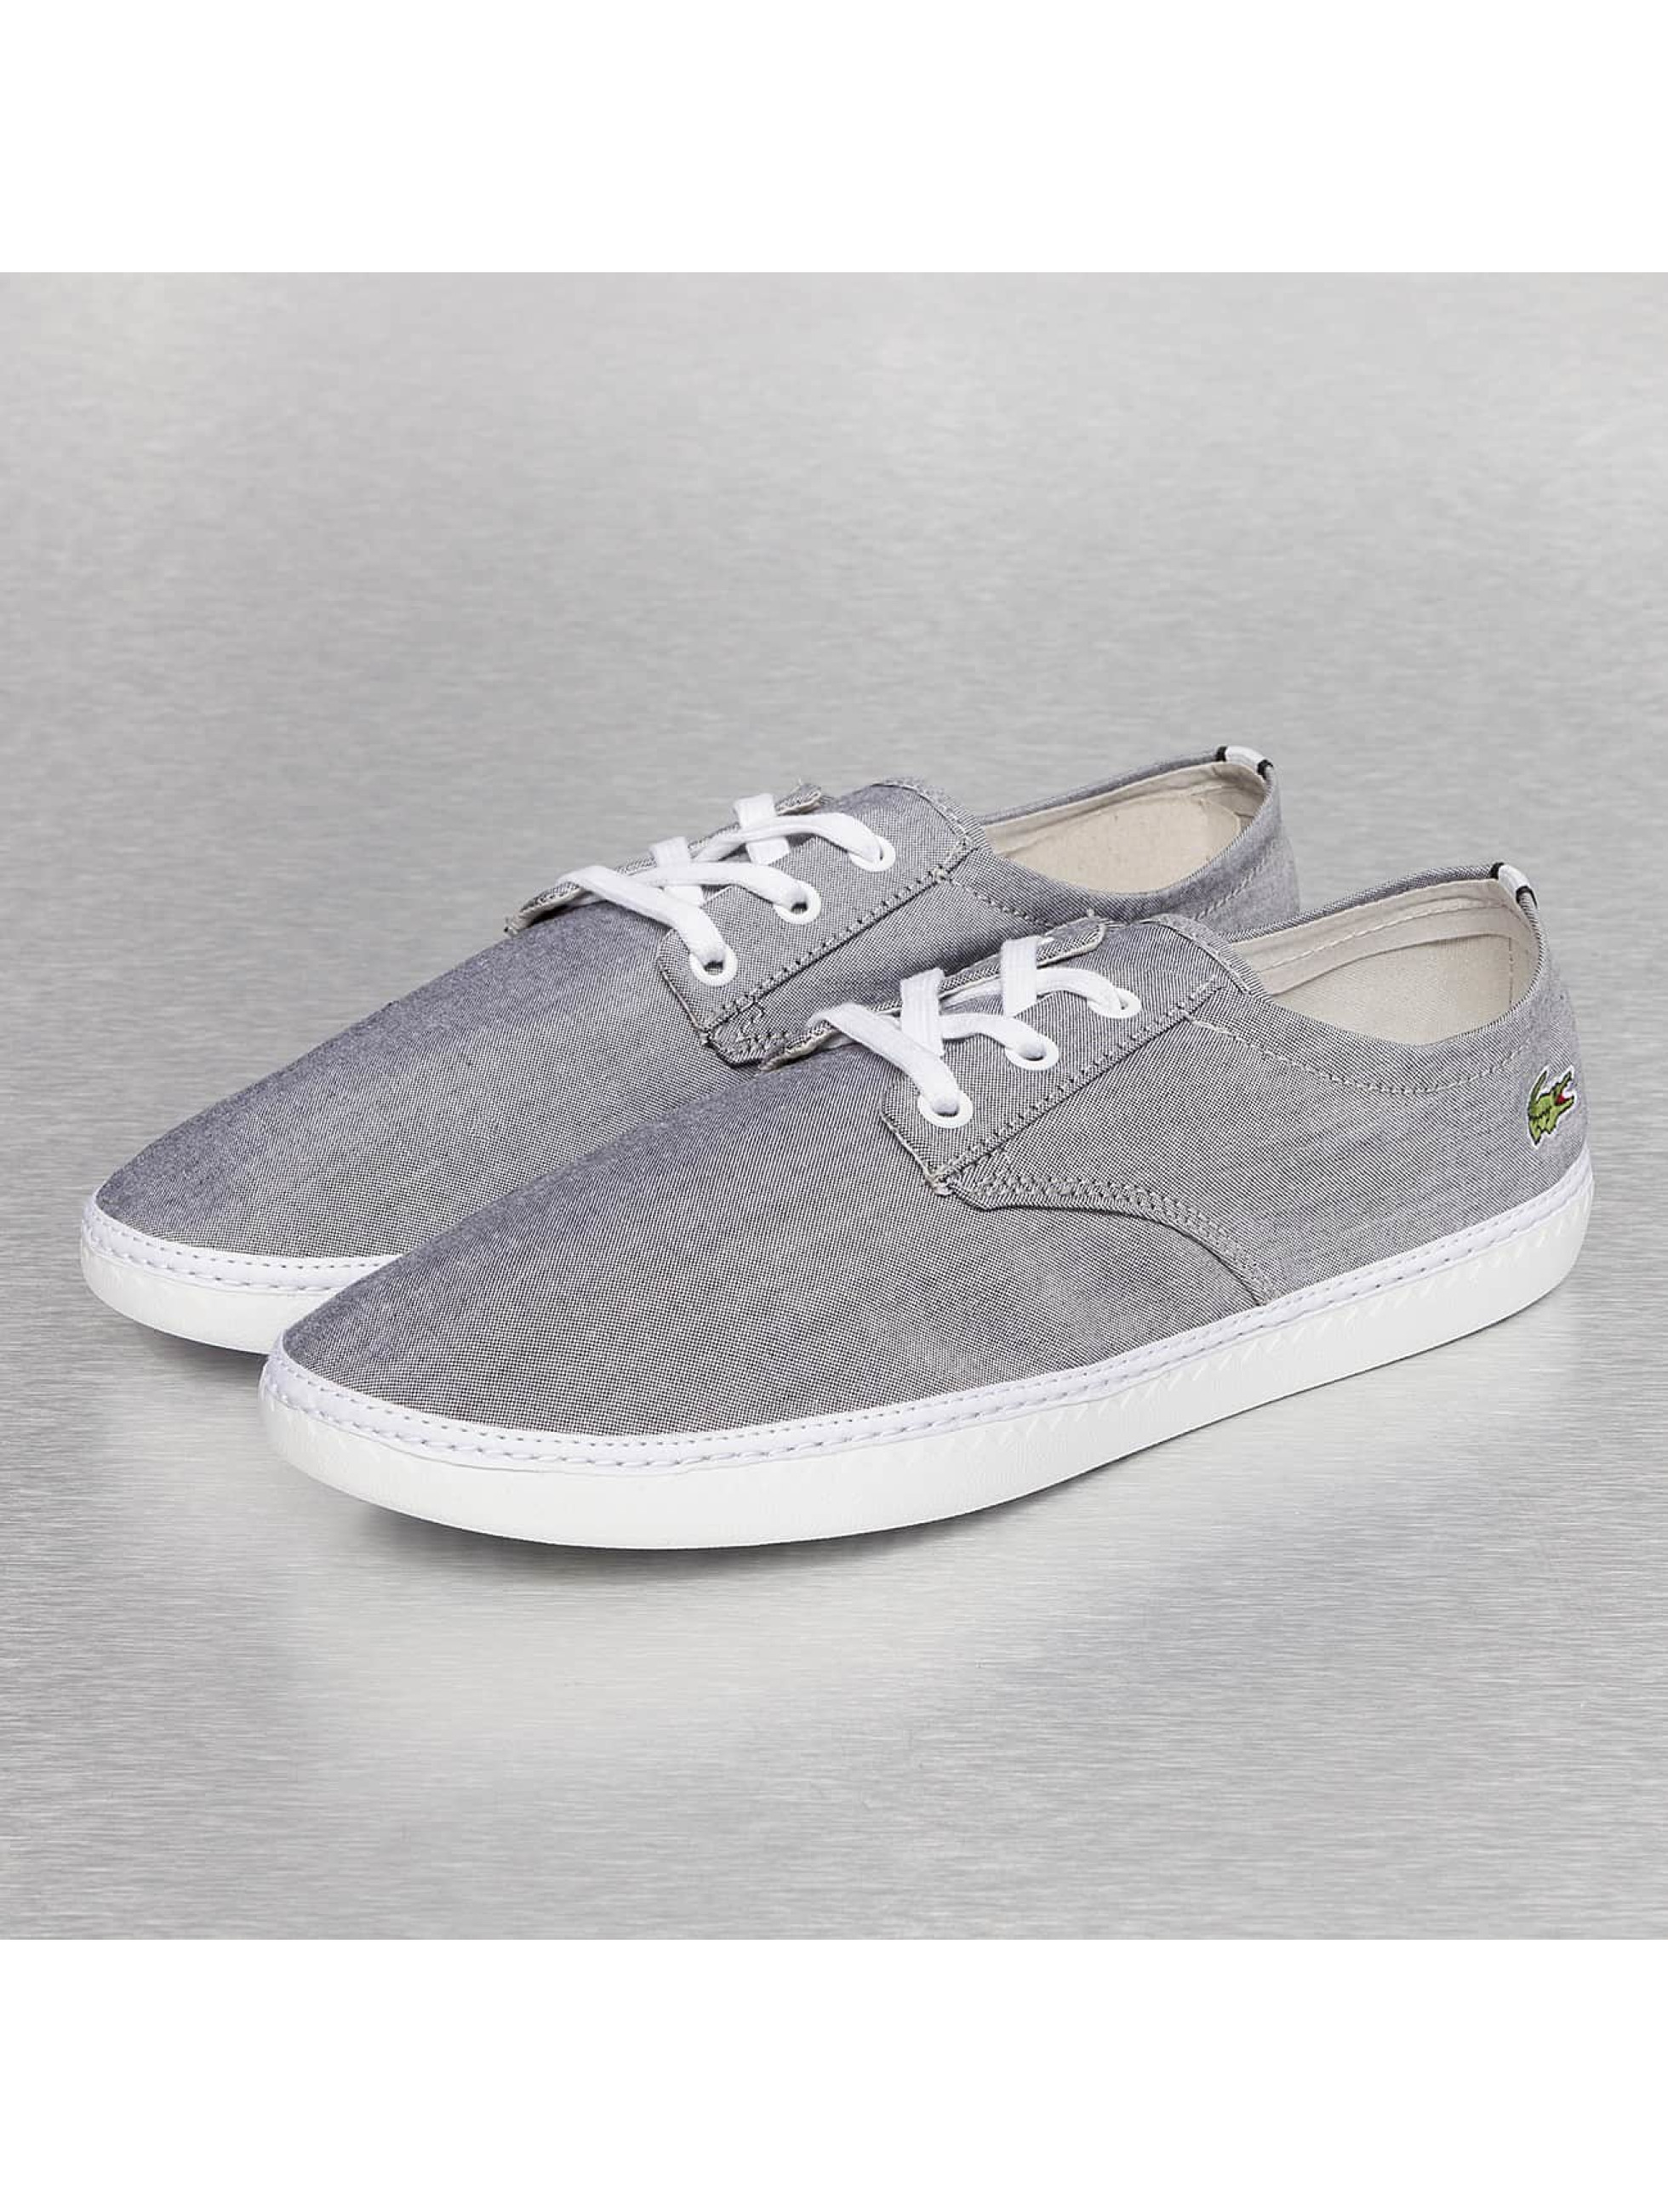 lacoste herren schuhe sneaker malahini deck 216 1 spm ebay. Black Bedroom Furniture Sets. Home Design Ideas